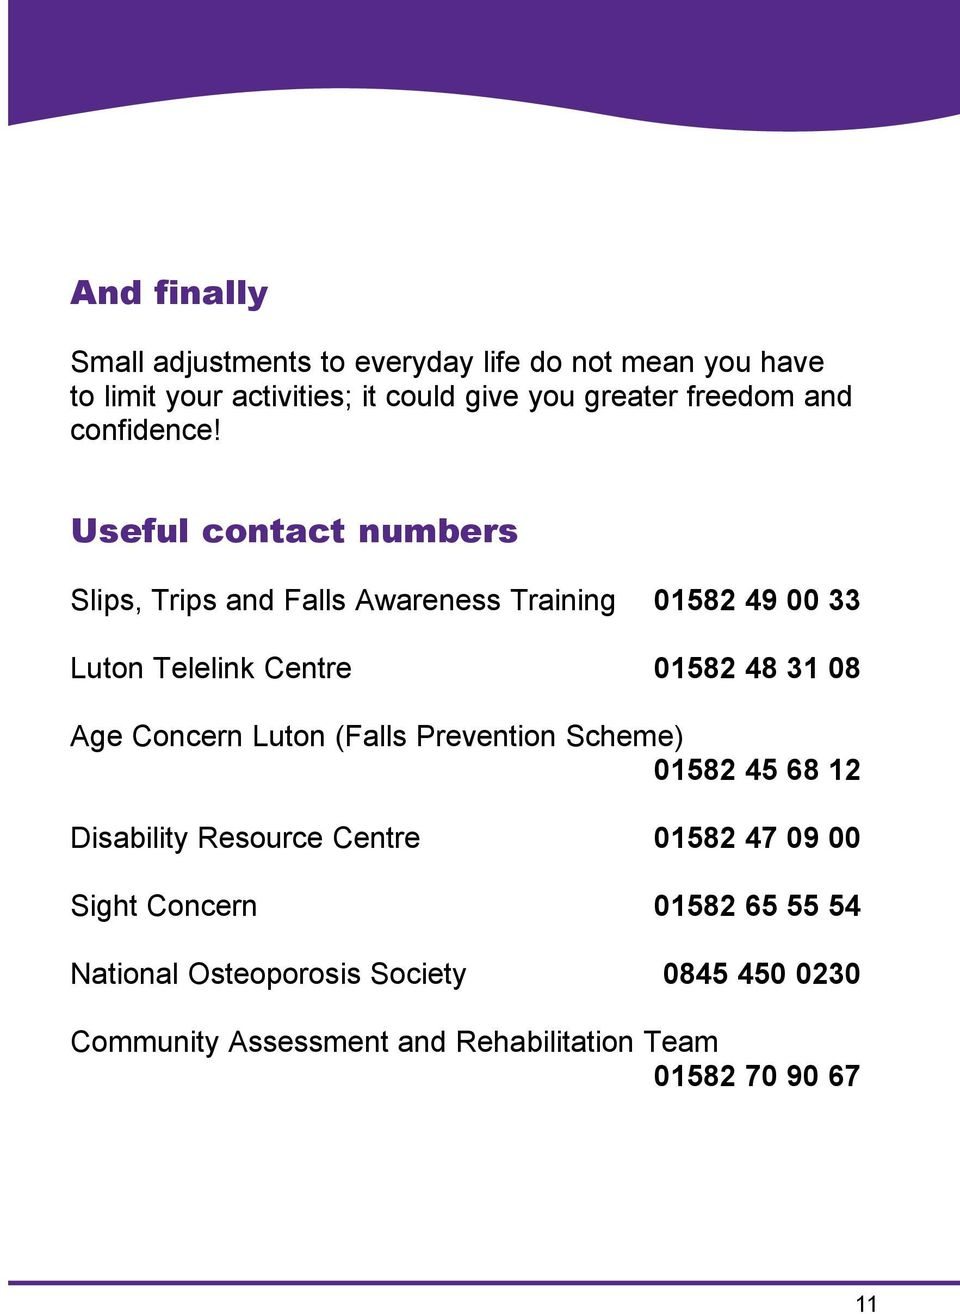 Usefu contact numbers Sips, Trips and Fas Awareness Training 01582 49 00 33 Luton Teeink Centre 01582 48 31 08 Age